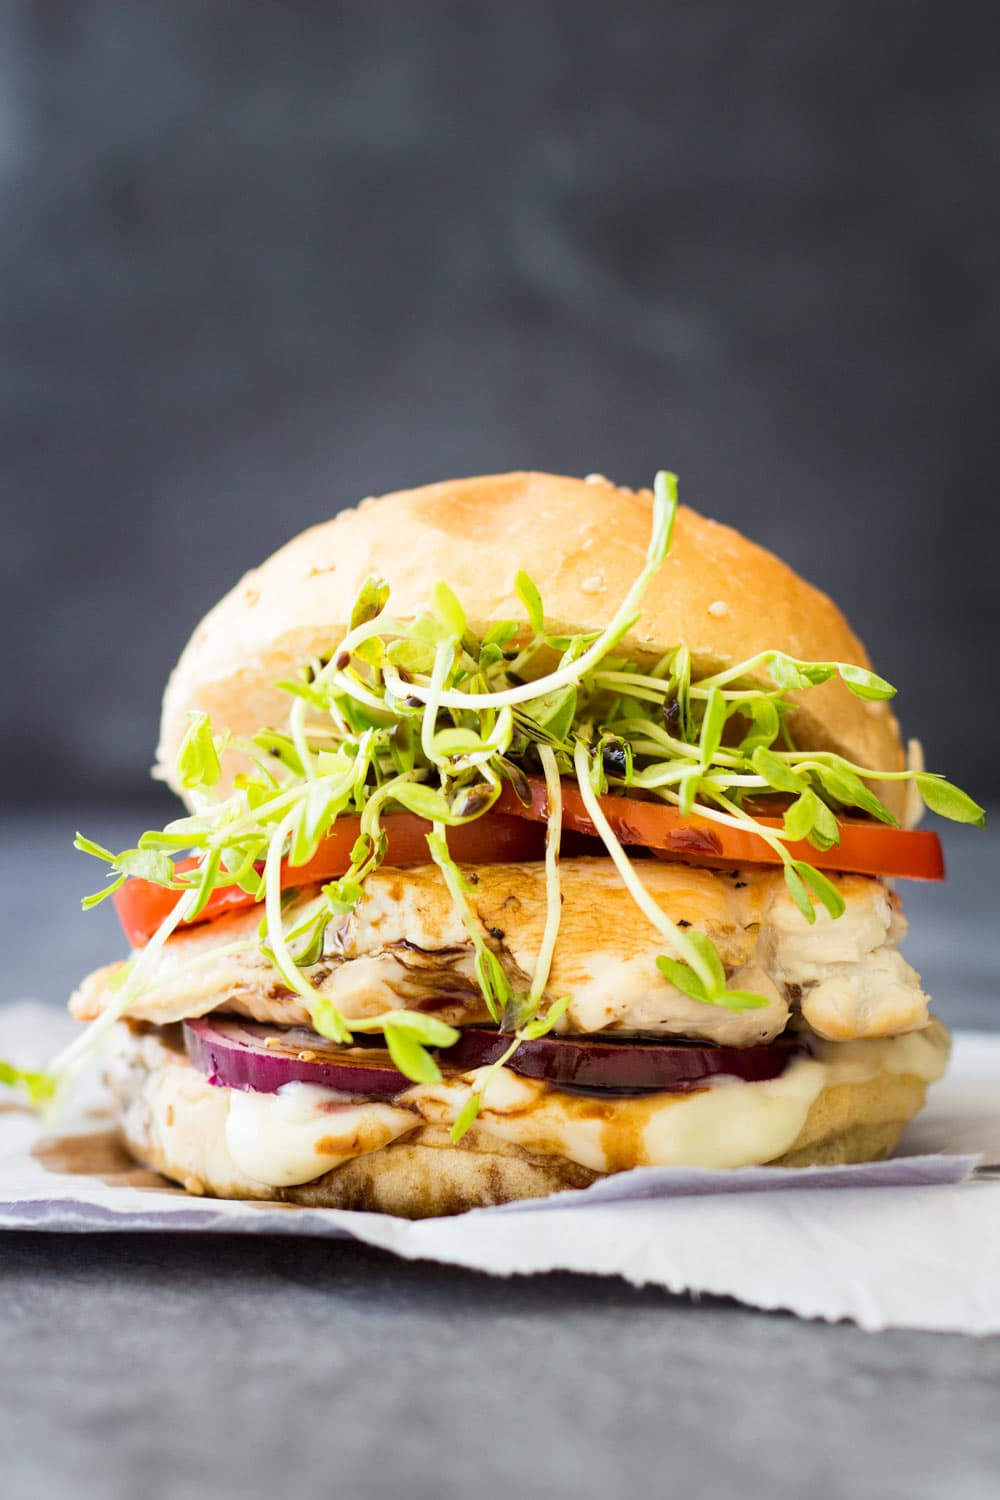 Recipe for a simple and Easy Grilled Chicken Burger made with chicken breast, tomato, microgreens, red onions and delicious 2-minute homemade mayonnaise!